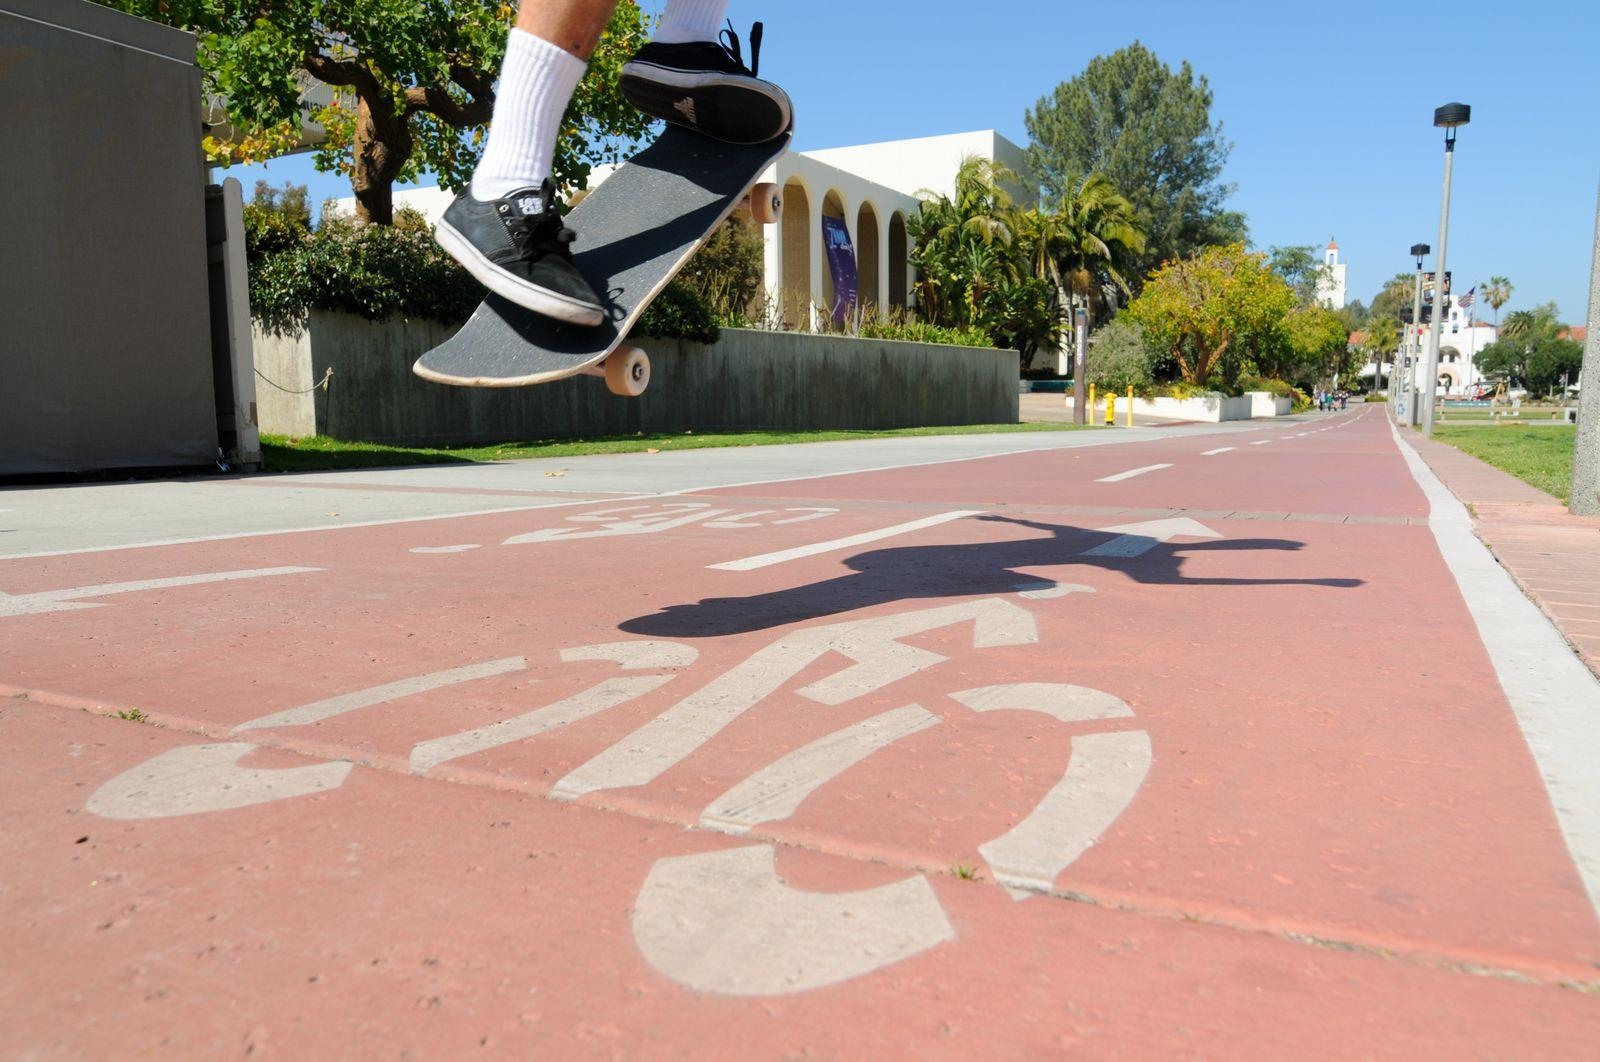 Skateboarder illegally using the Campanile bike lane. | Dustin Michelson, Staff Photographer